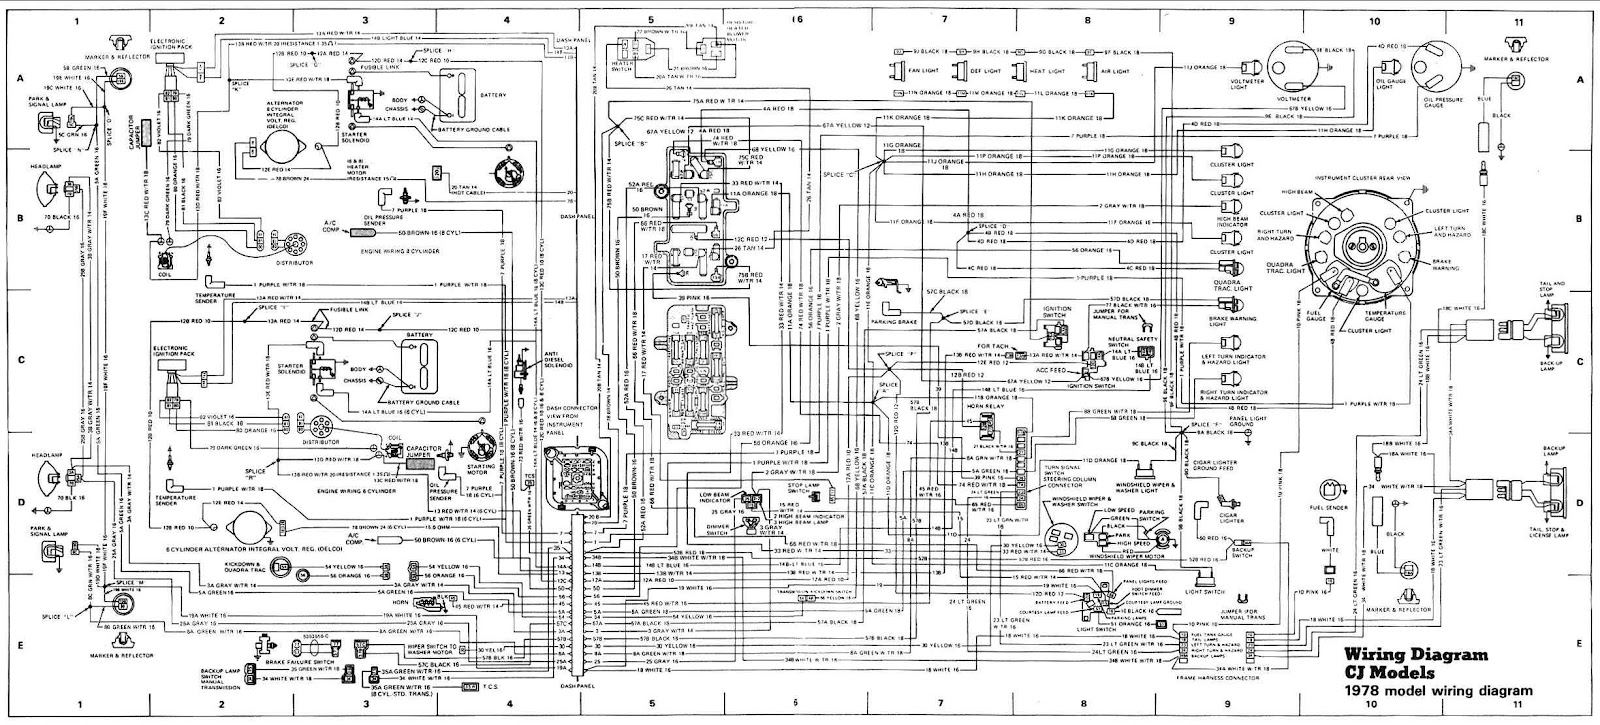 hight resolution of jeep cj models 1978 complete electrical wiring diagram 2001 opel astra estate 2001 opel astra interior